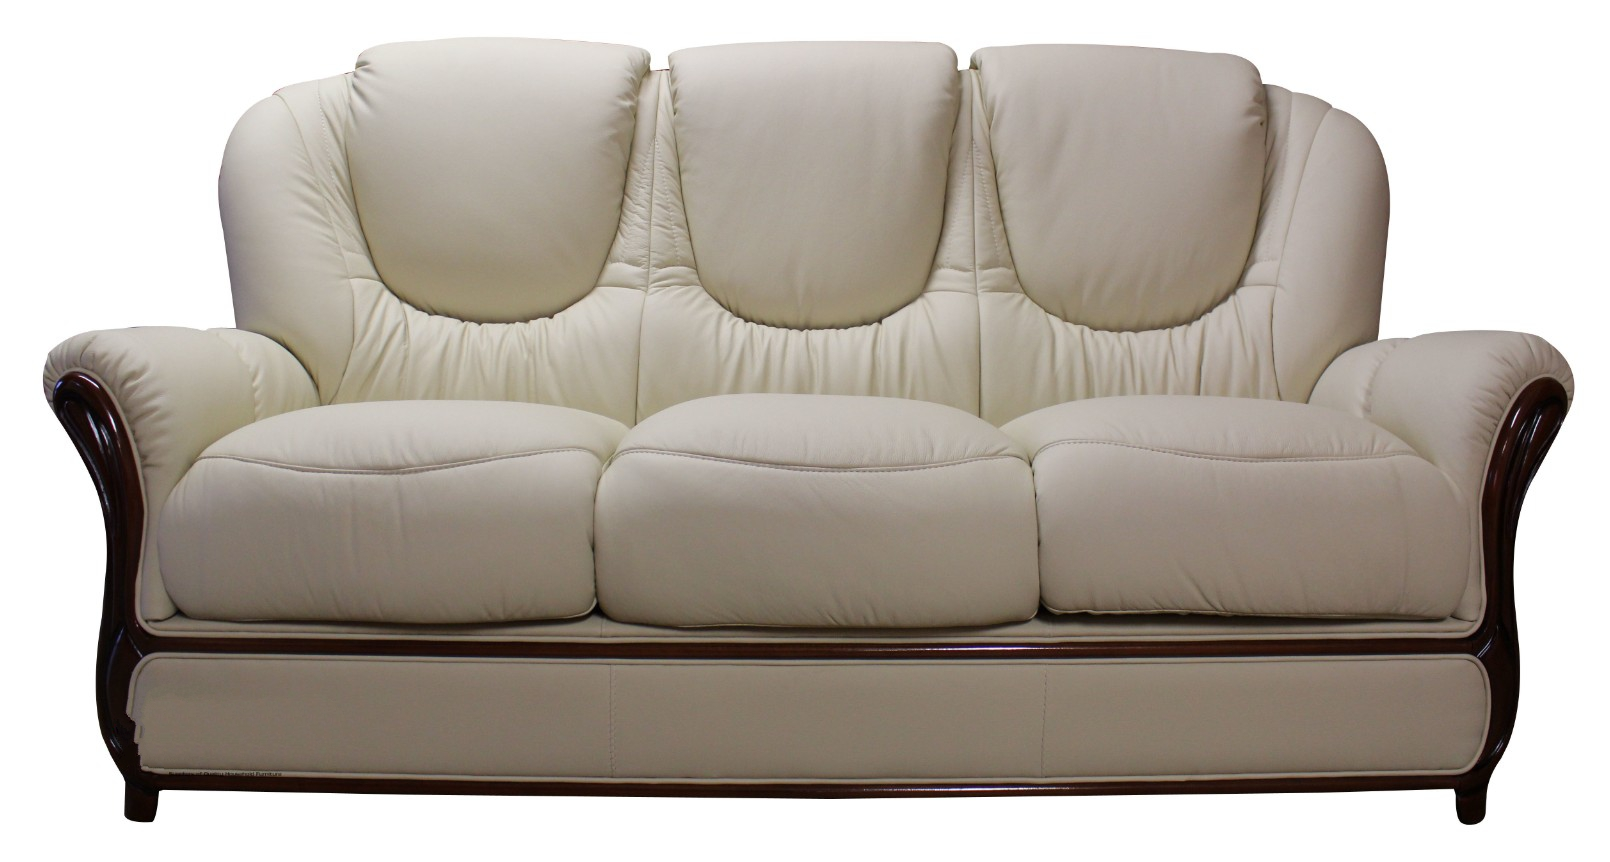 Juliet genuine italian leather 3 seater sofa settee cream for Leather sofa 7 seater